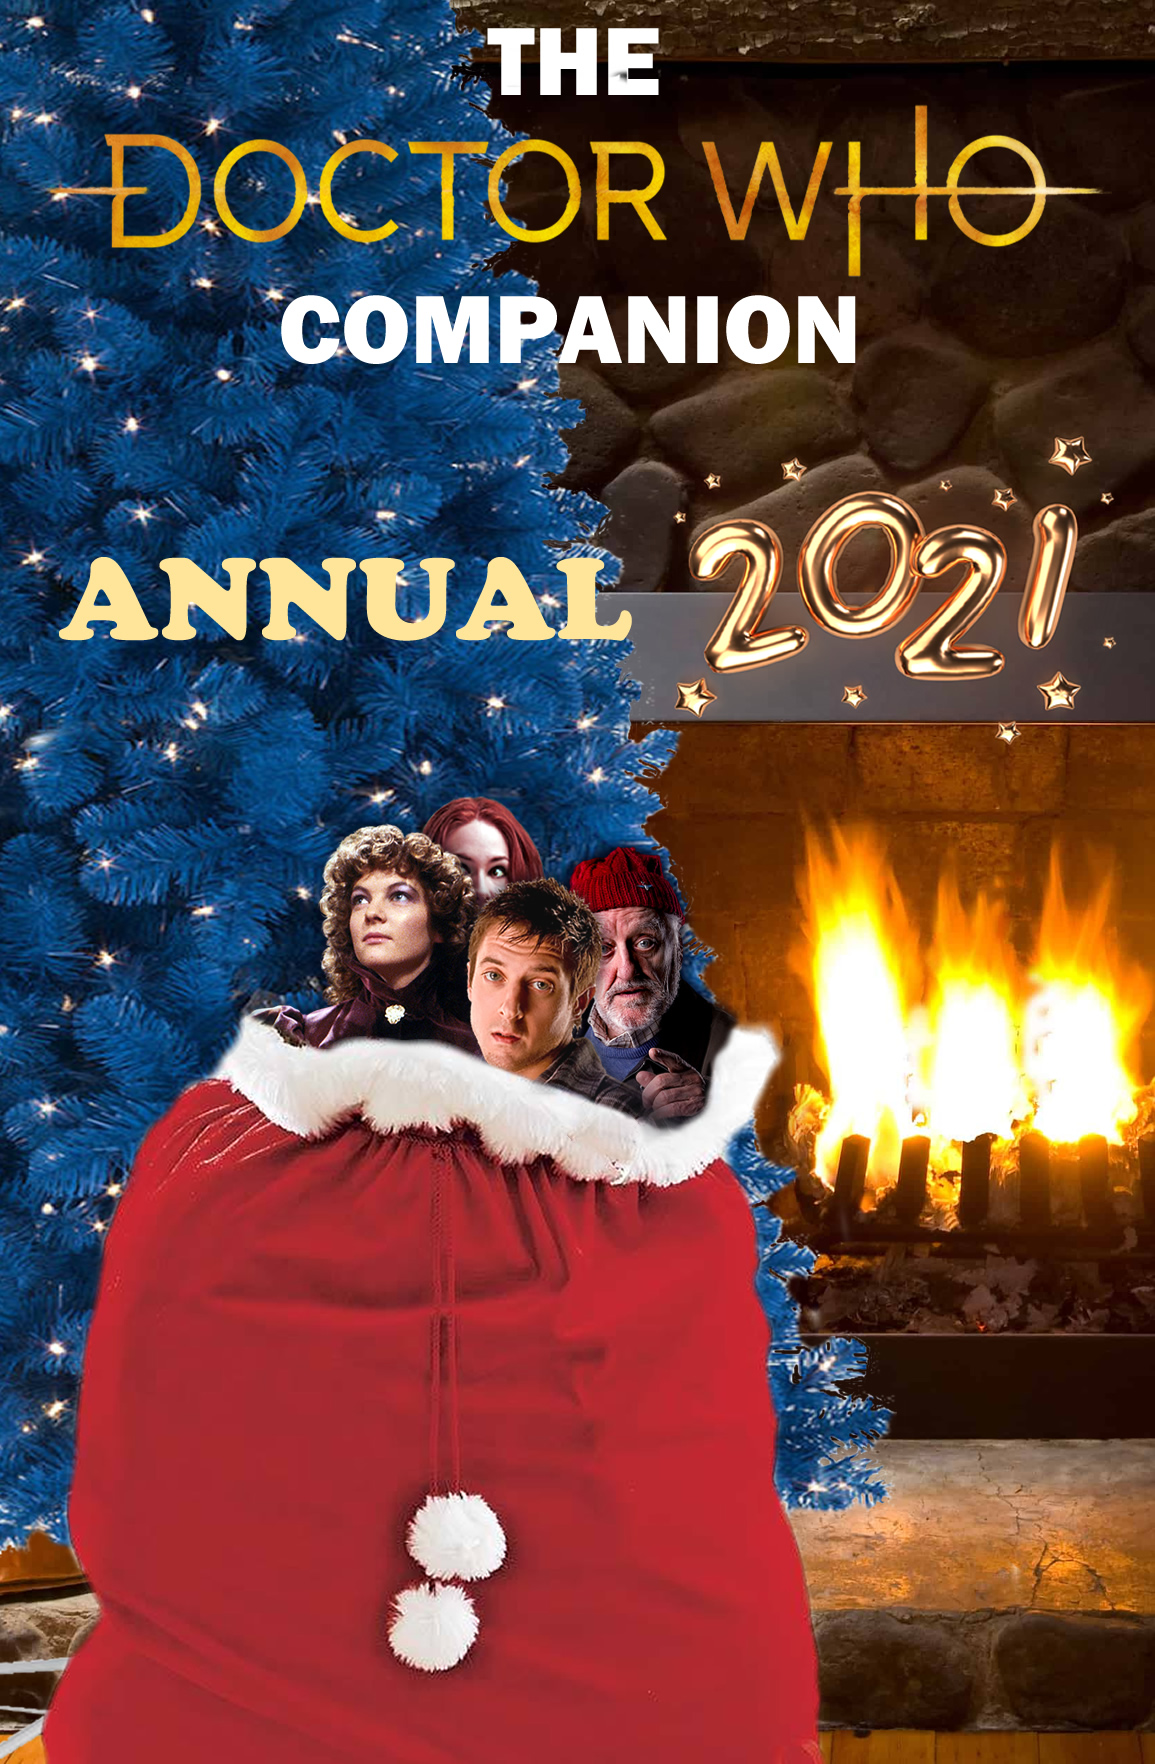 Merry Christmas: Celebrate with the Free Doctor Who Companion Annual 2021!